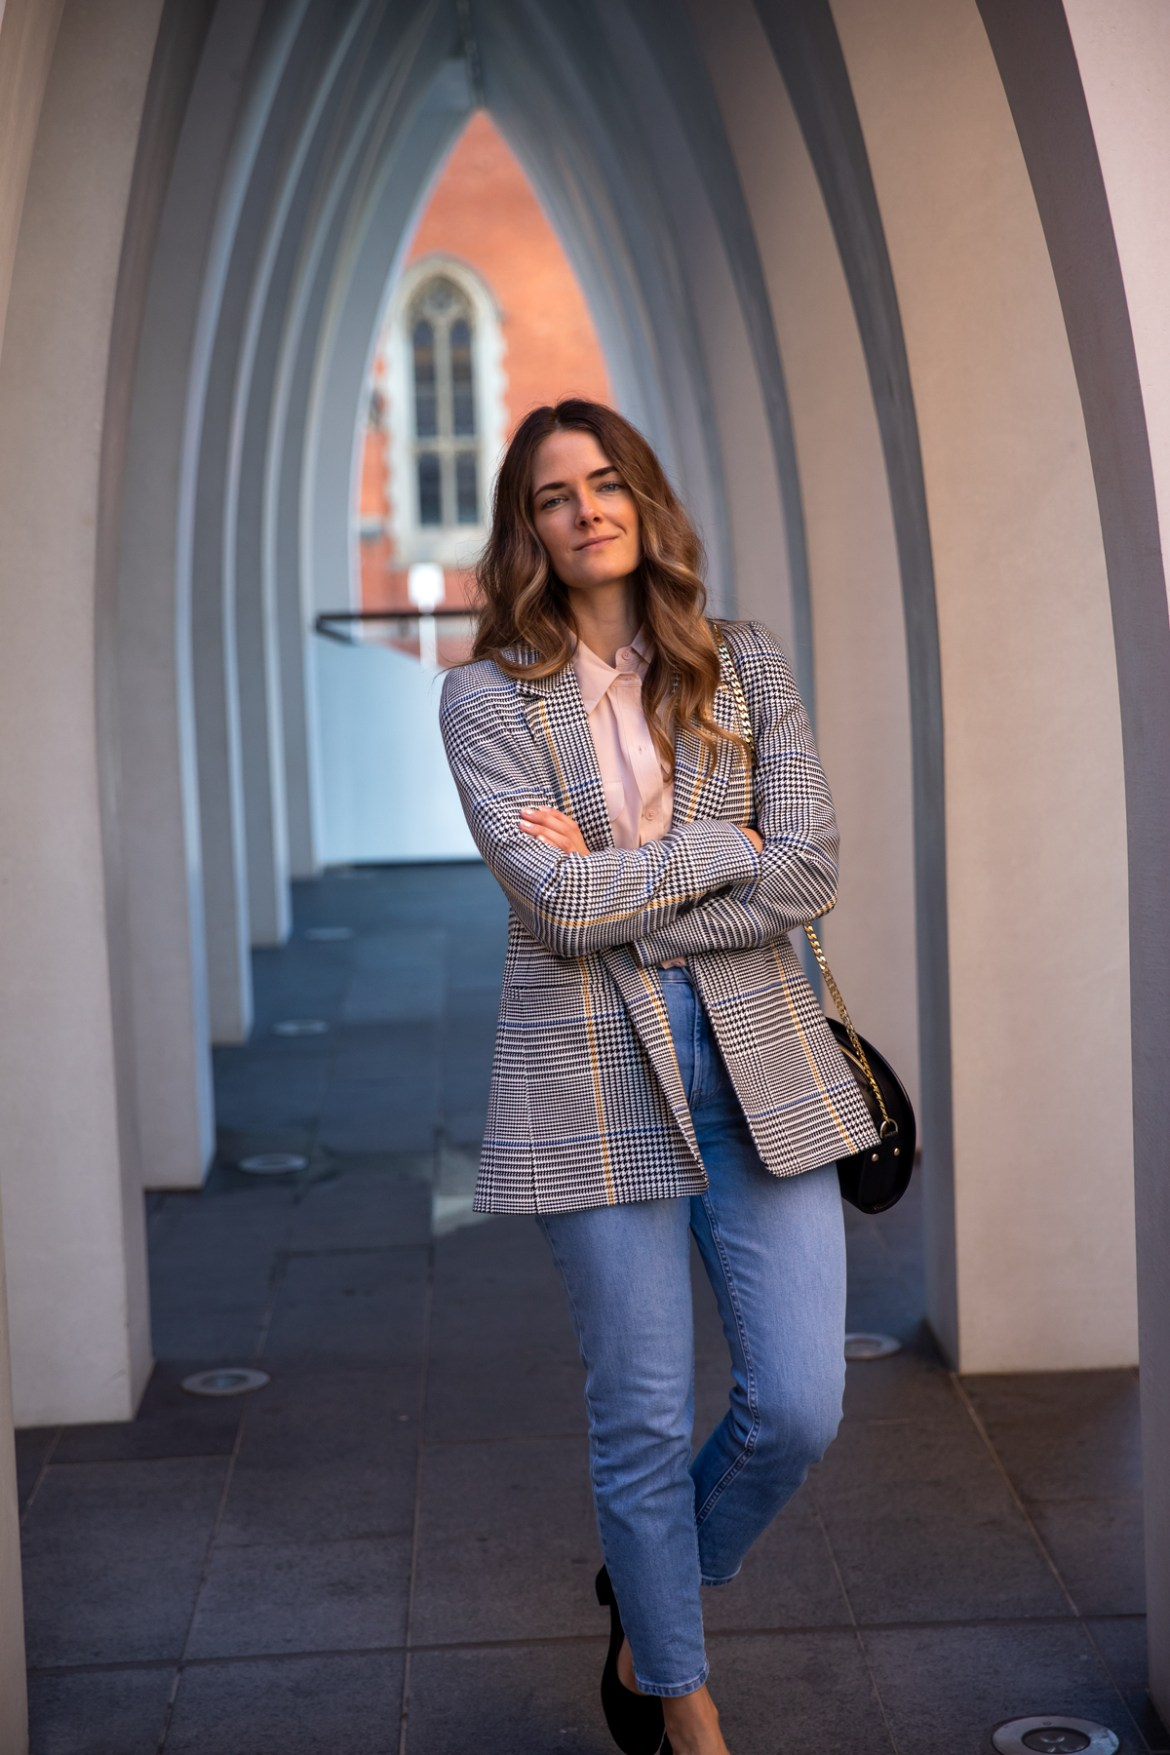 capsule wardrobe items in one repeat wearable outfit for any season with an Anine Bing check blazer jeans and a button down shirt worn by Inspiring Wit fashion blogger Jenelle